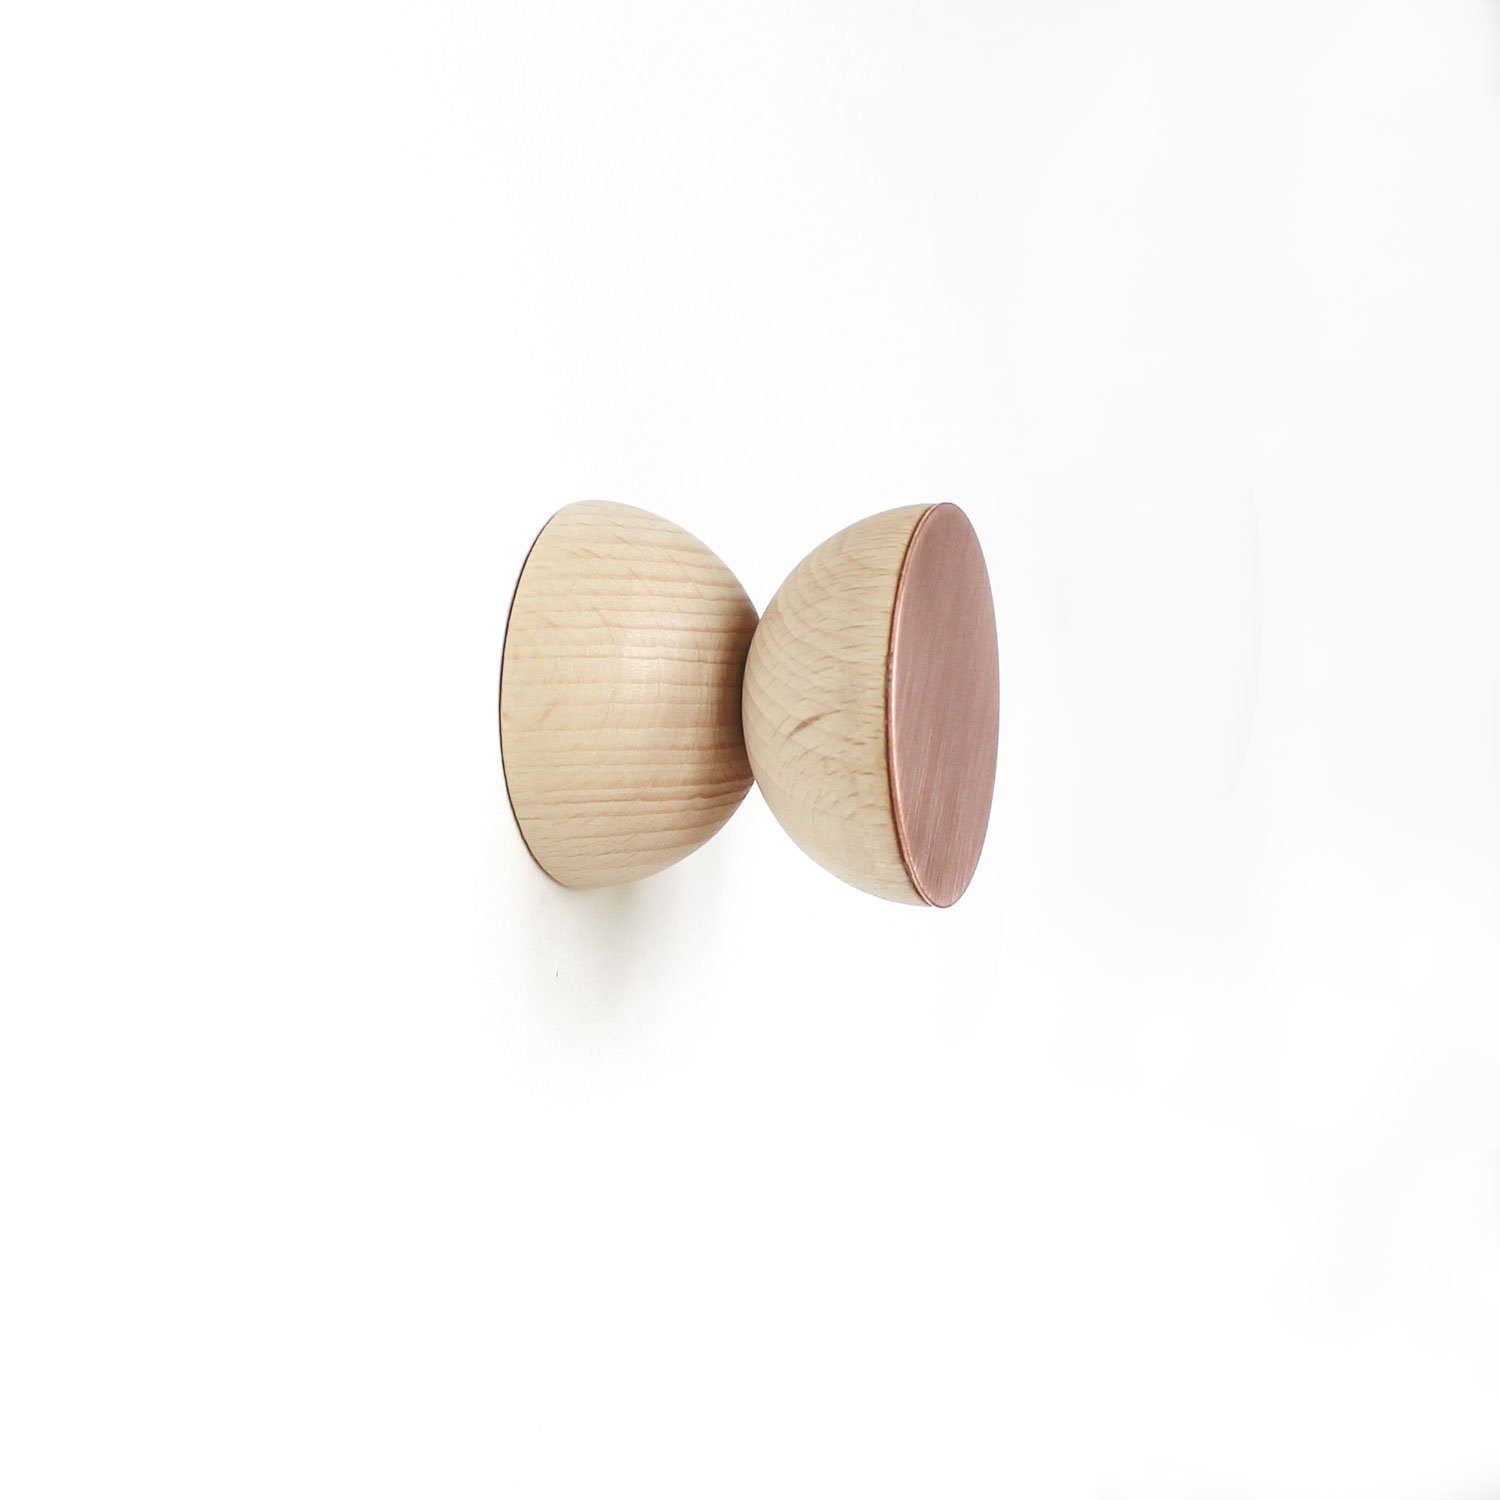 Double Round Beech Wood & Copper Wall Hook - Hooks - 5mm Paper - Naiise